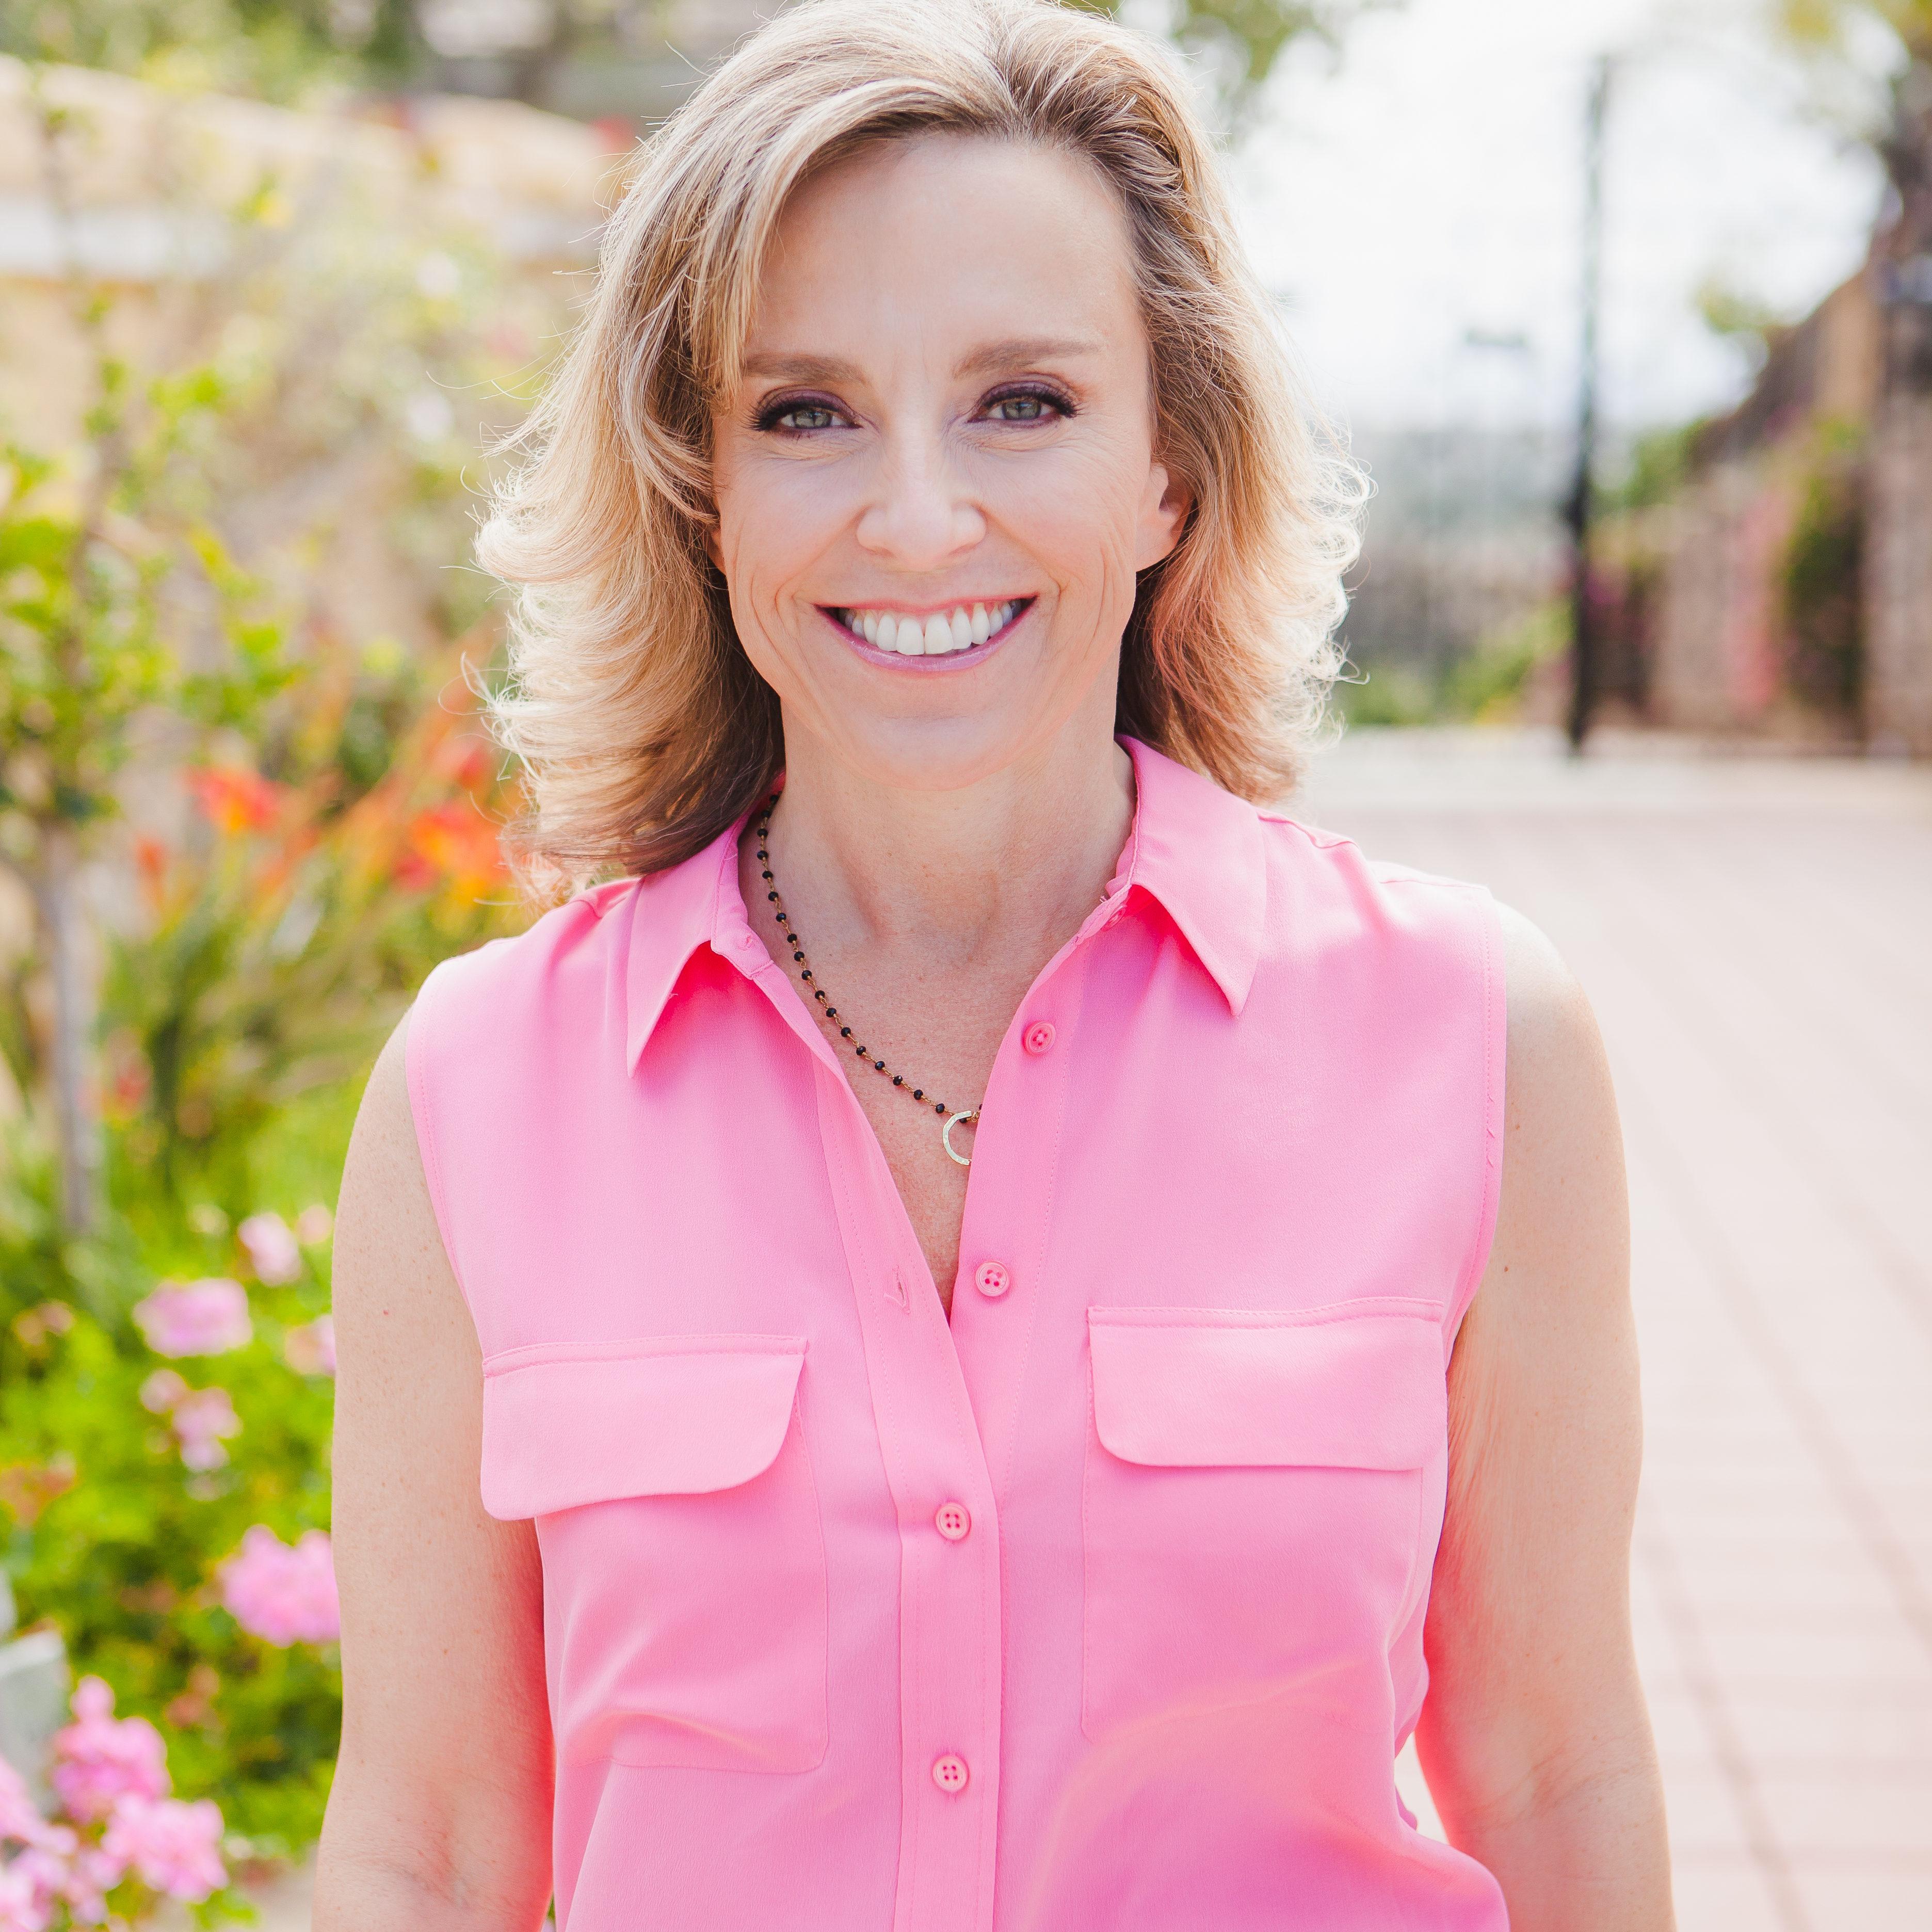 Dr. Sharon Cohen, Dating Expert in Newport Beach, Relationship Counseling, Relationship Help